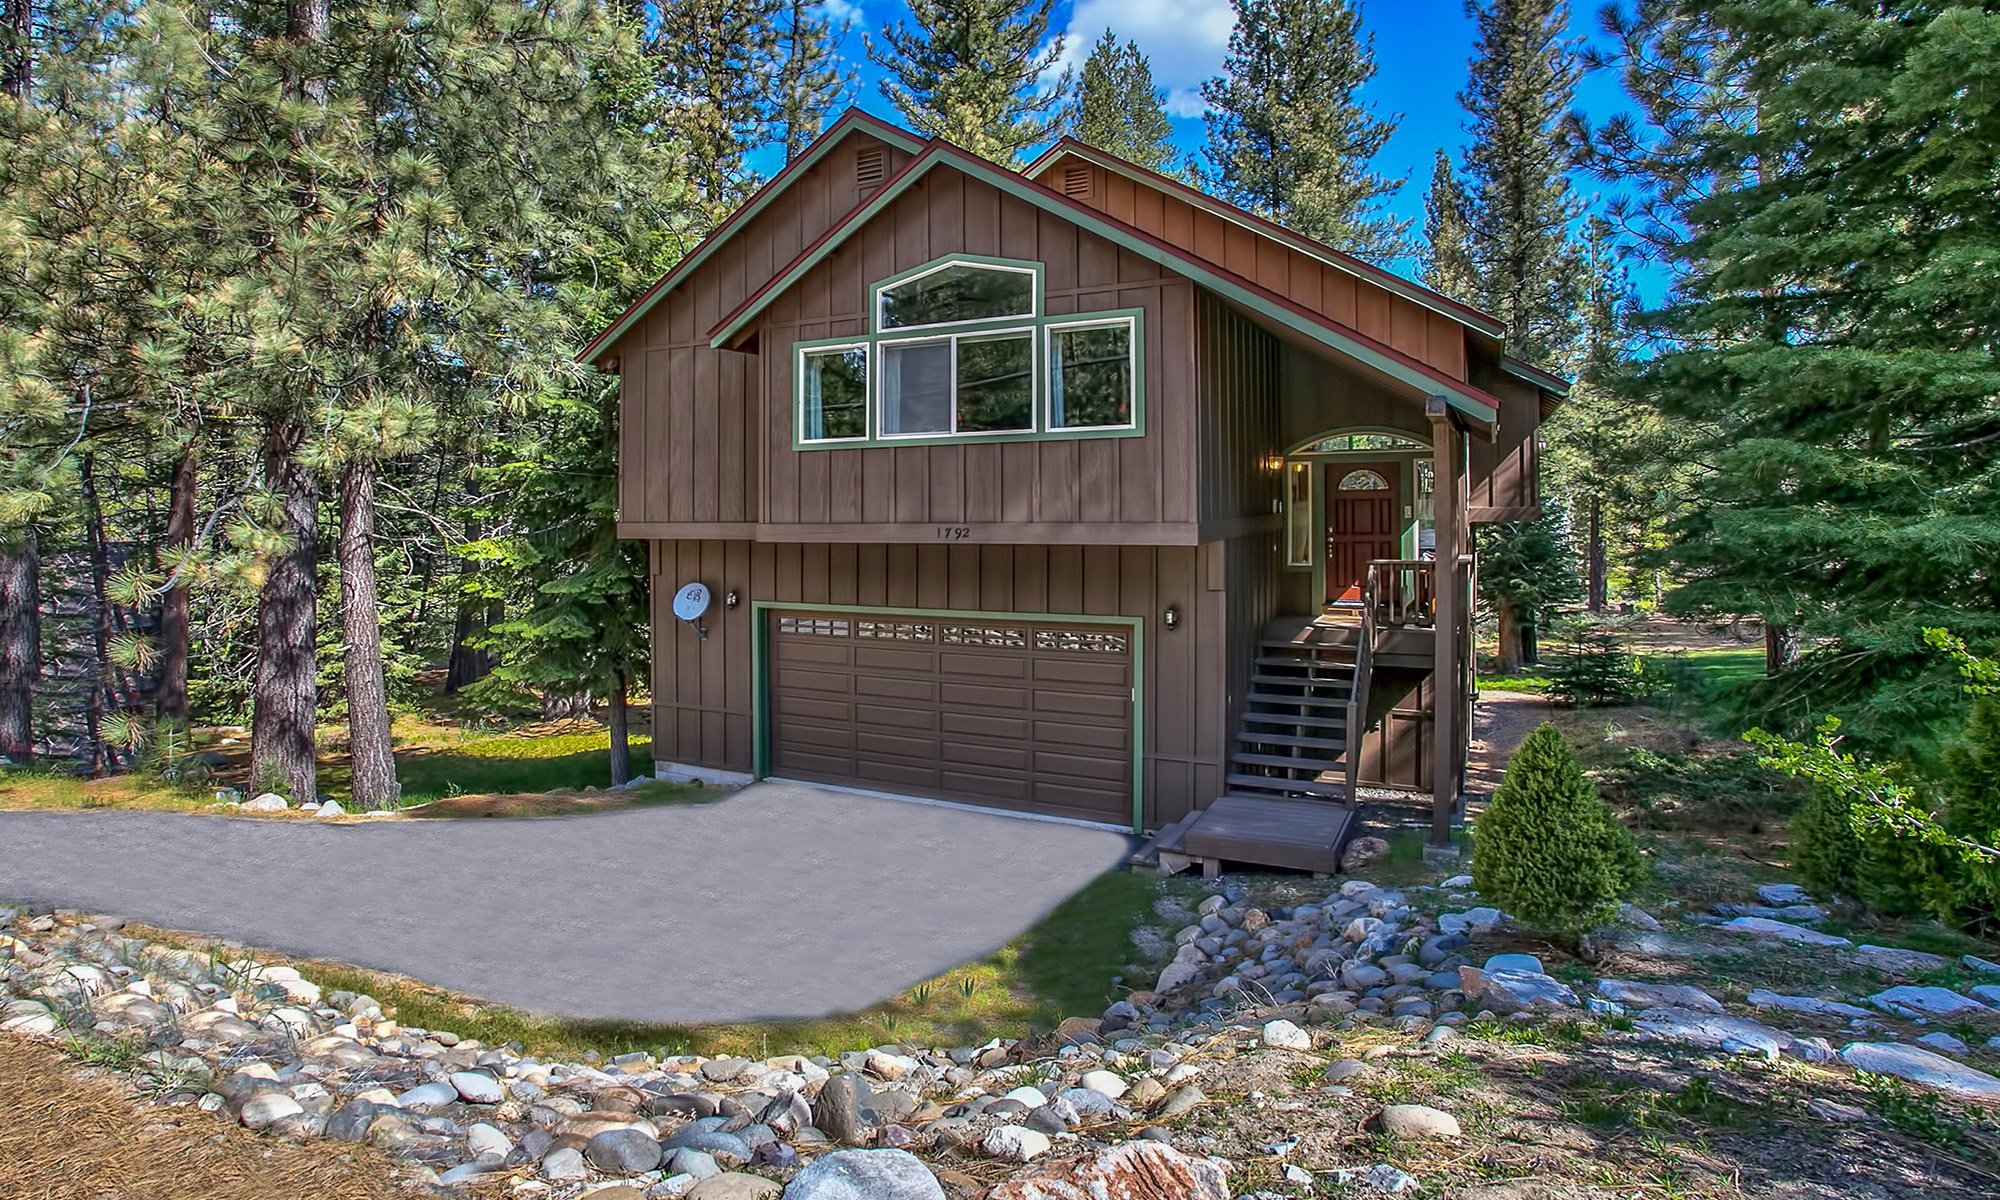 Single Family Home for Active at 1792 Apache 1792 Apache Avenue South Lake Tahoe, California 96150 United States